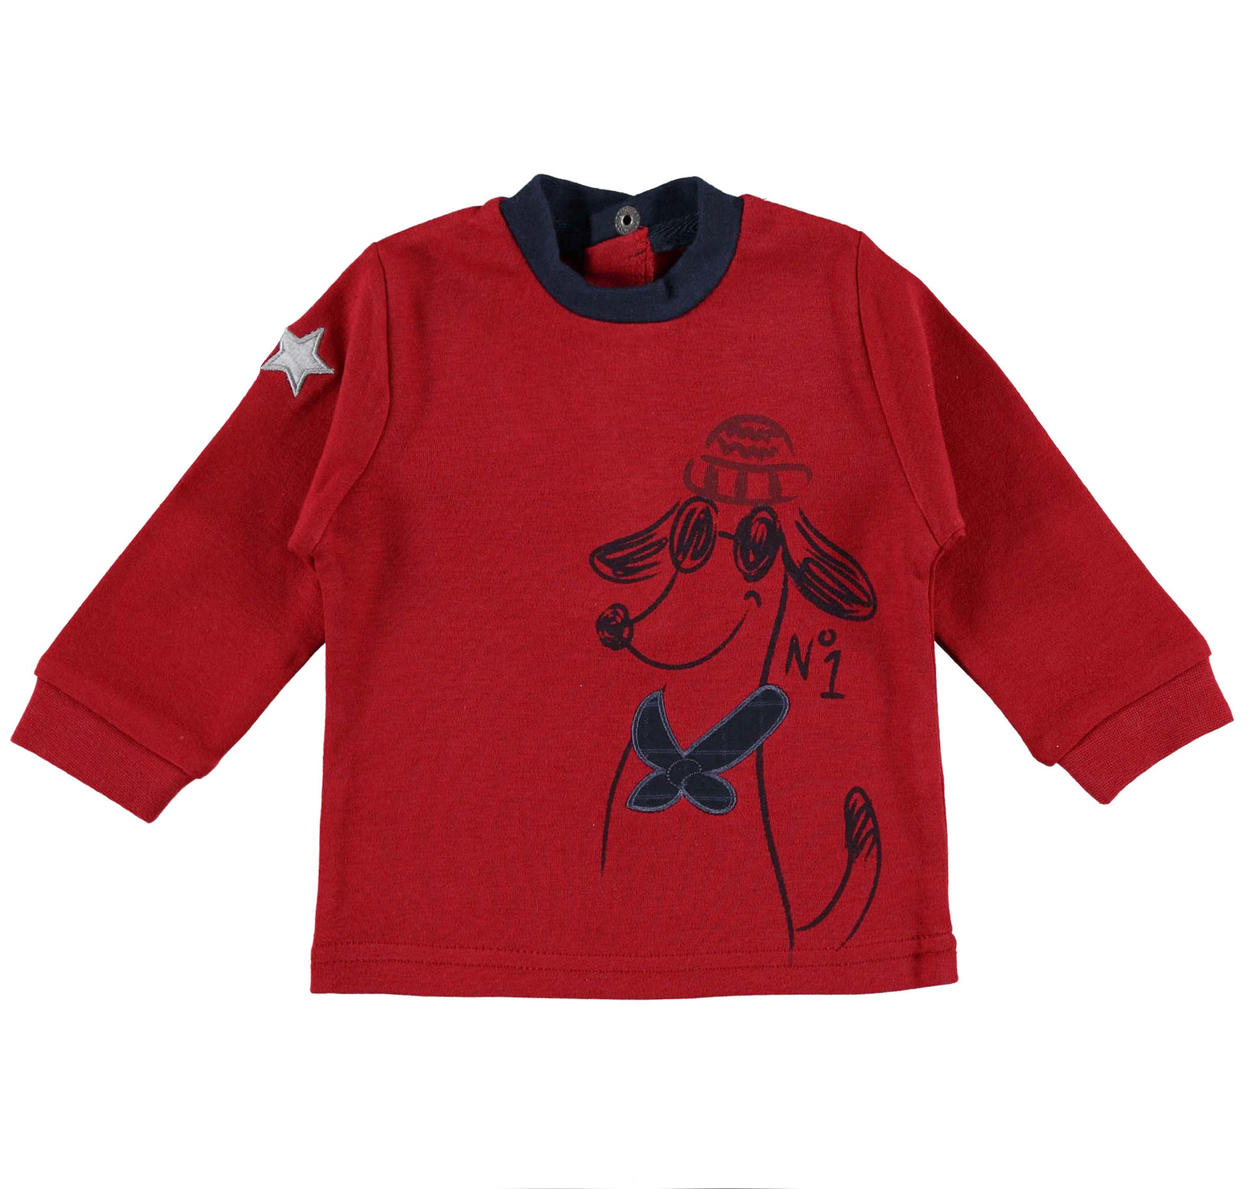 00f29224e060 Fun Minibanda long-sleeved 100% cotton t-shirt with dog for babies ...